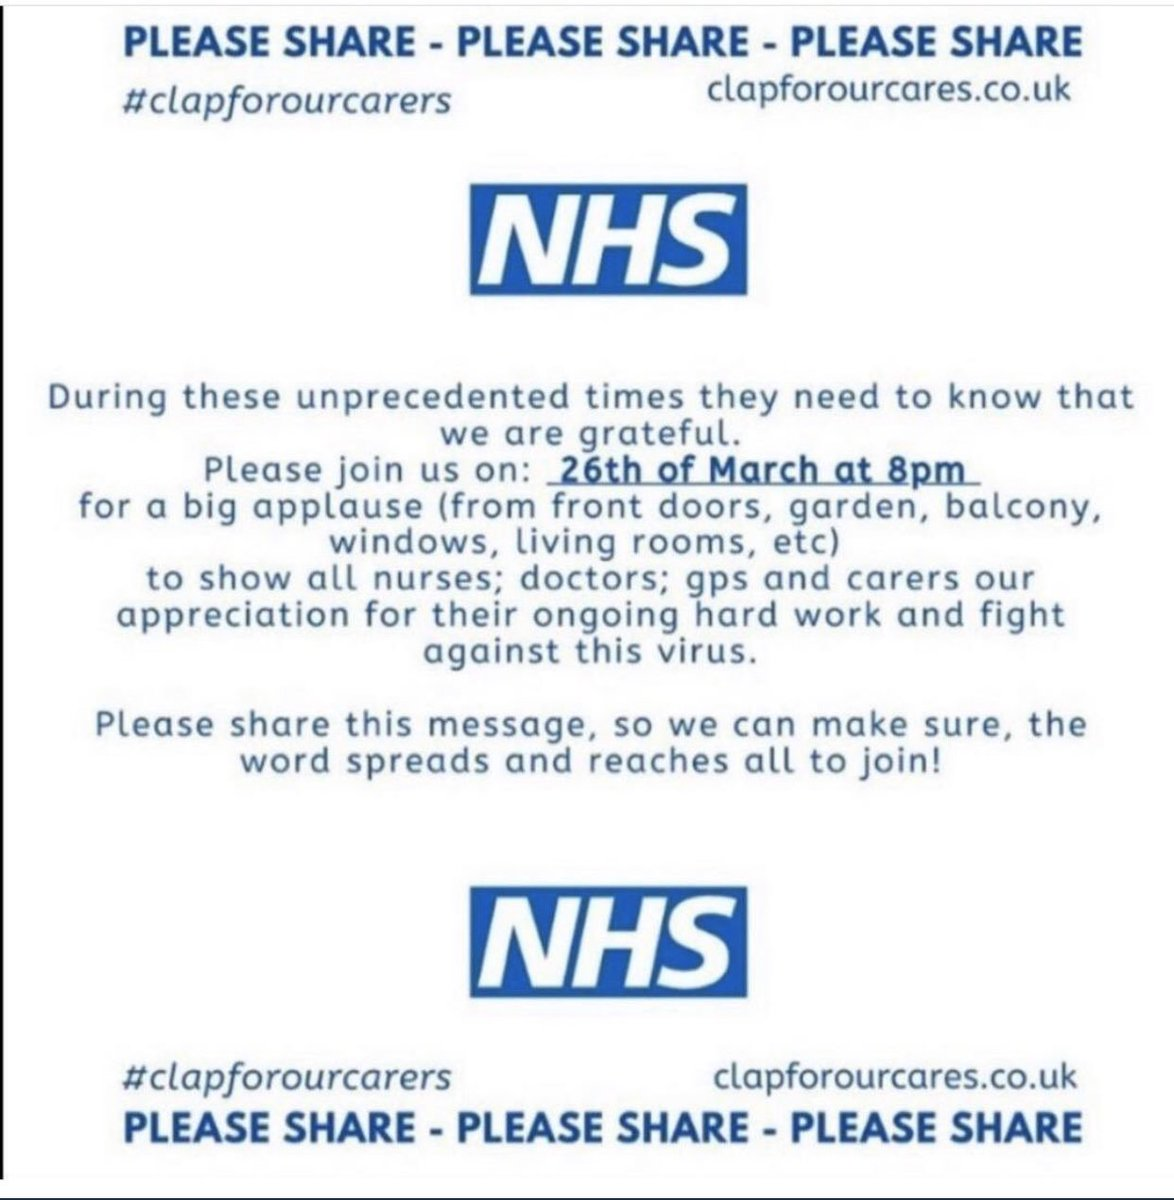 Don't forget to join the country tonight to #clapforNHS at 8pm. The doctors which are on the frontline dealing with this #pandemic are truly amazing people #ClapForCarers